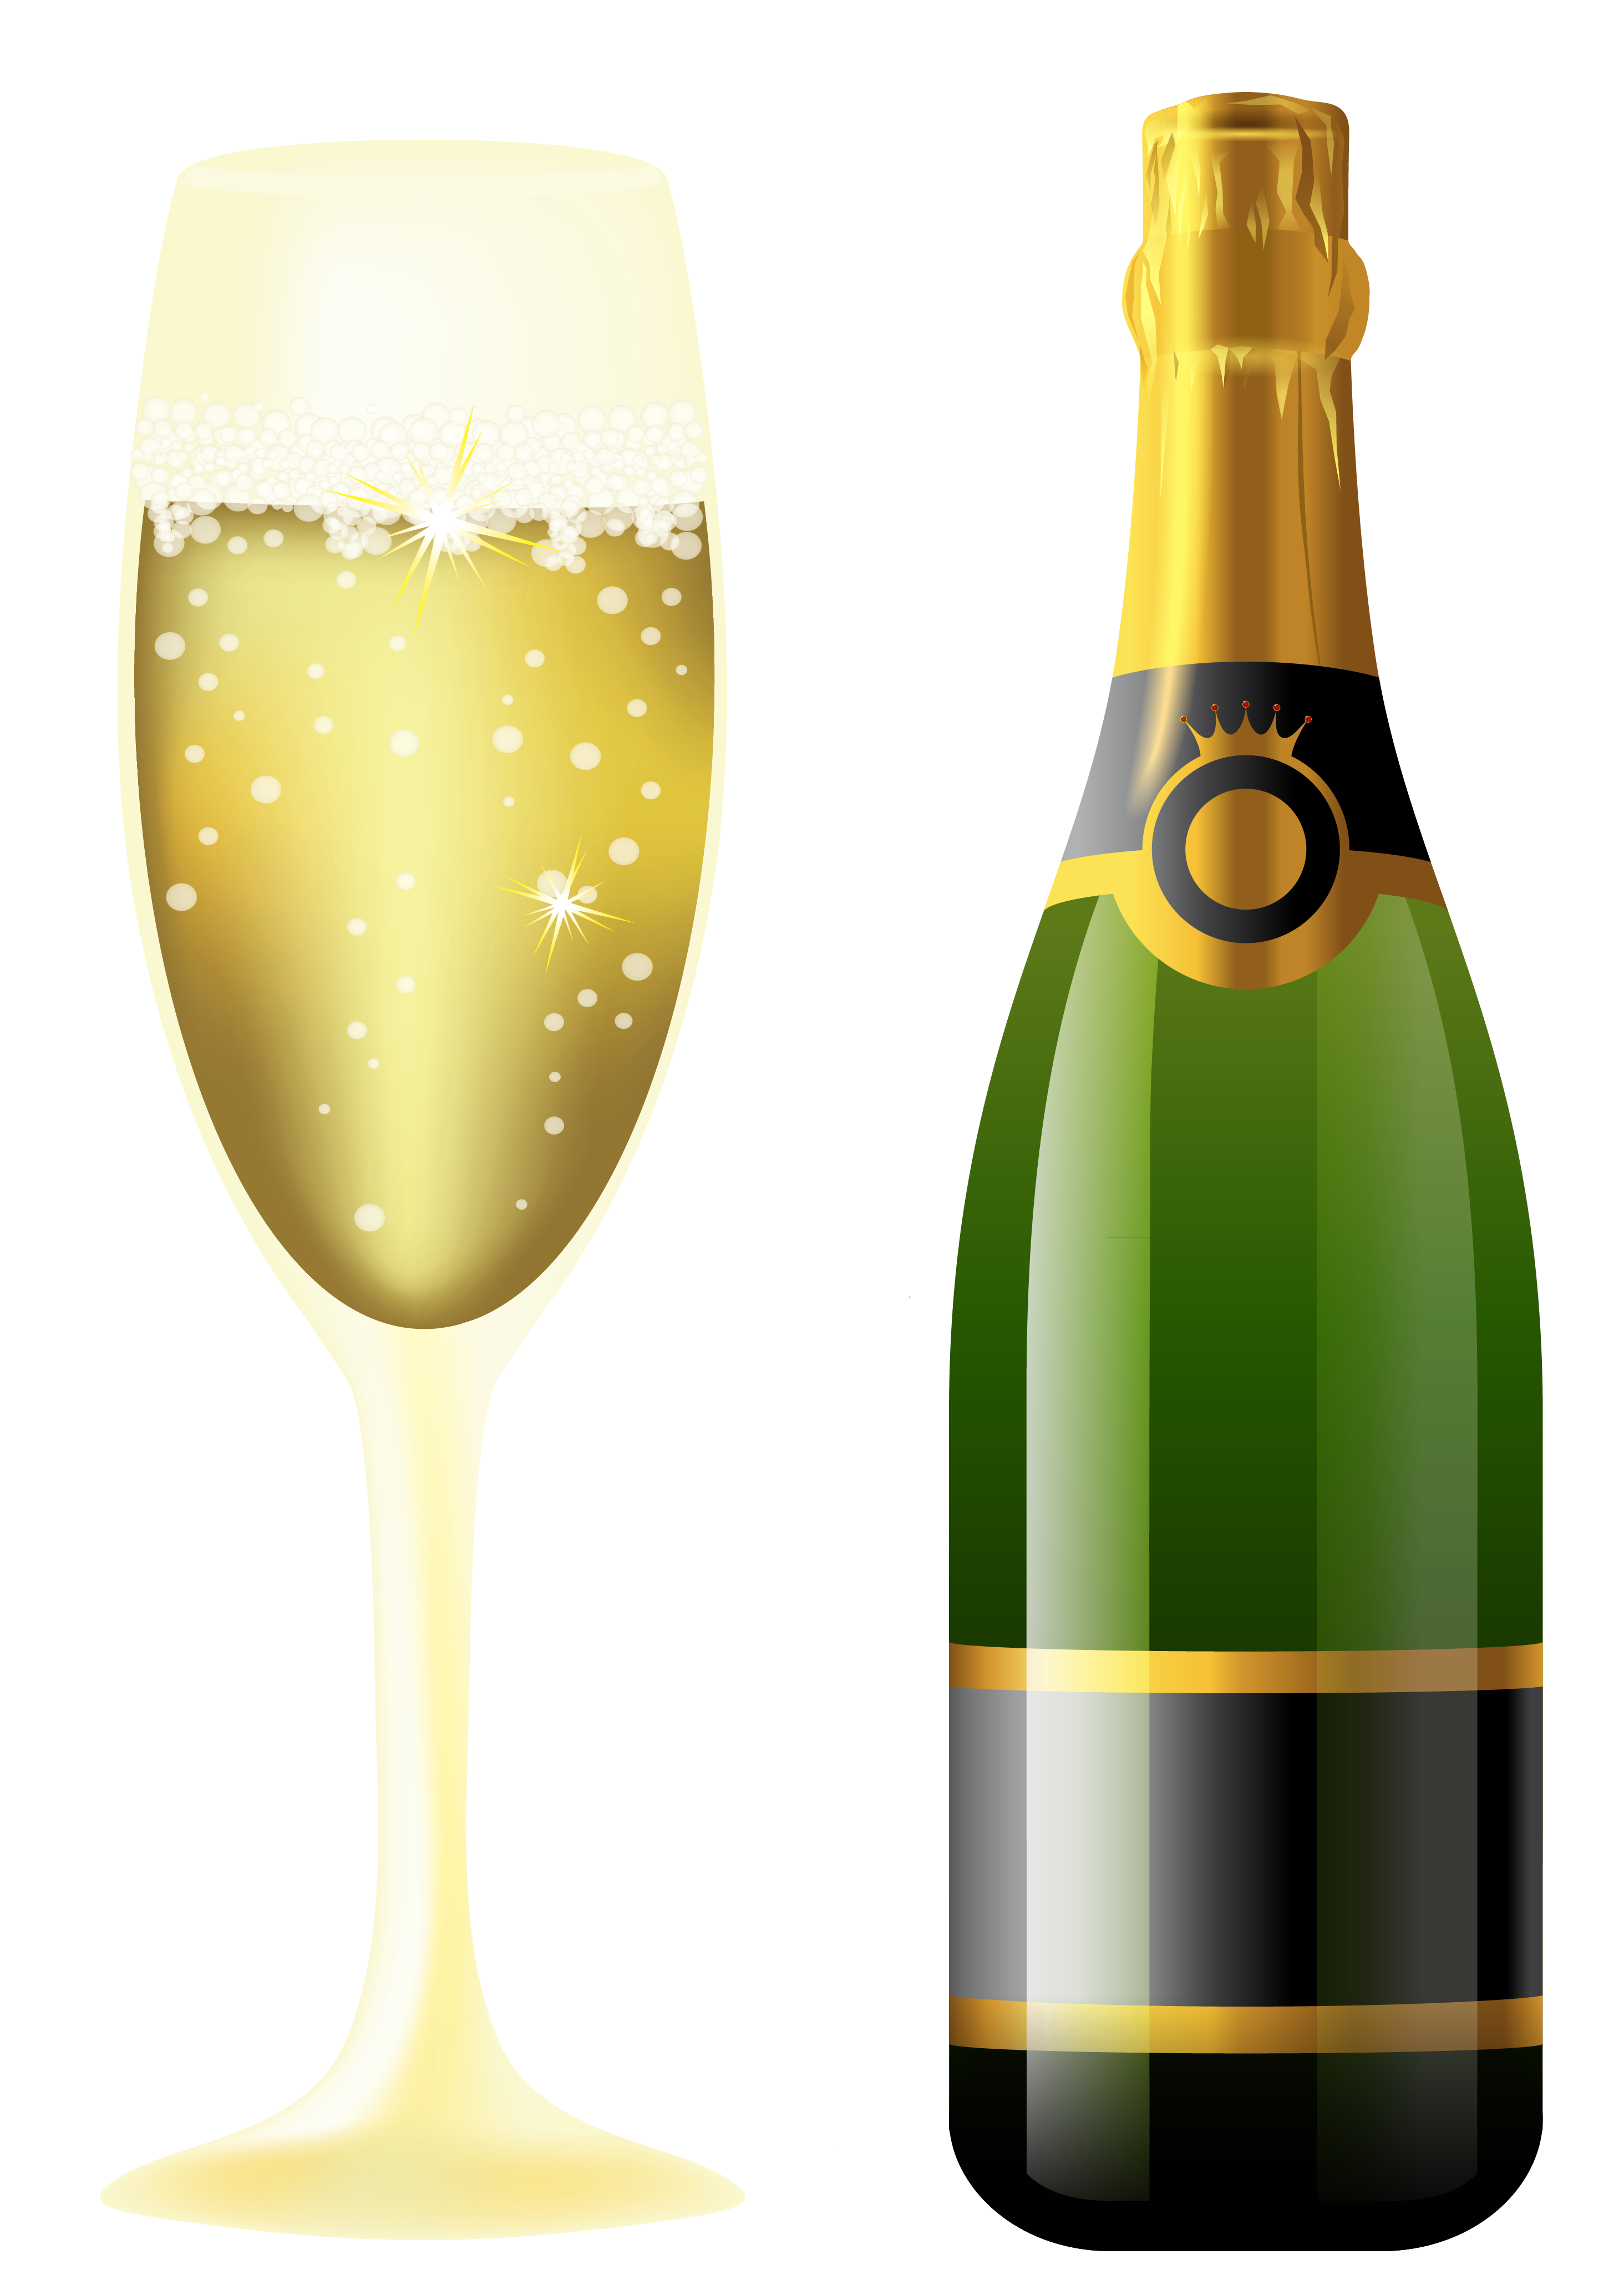 New_Year_Sparkling_Wine_and_Glass.png?m=1399672800.